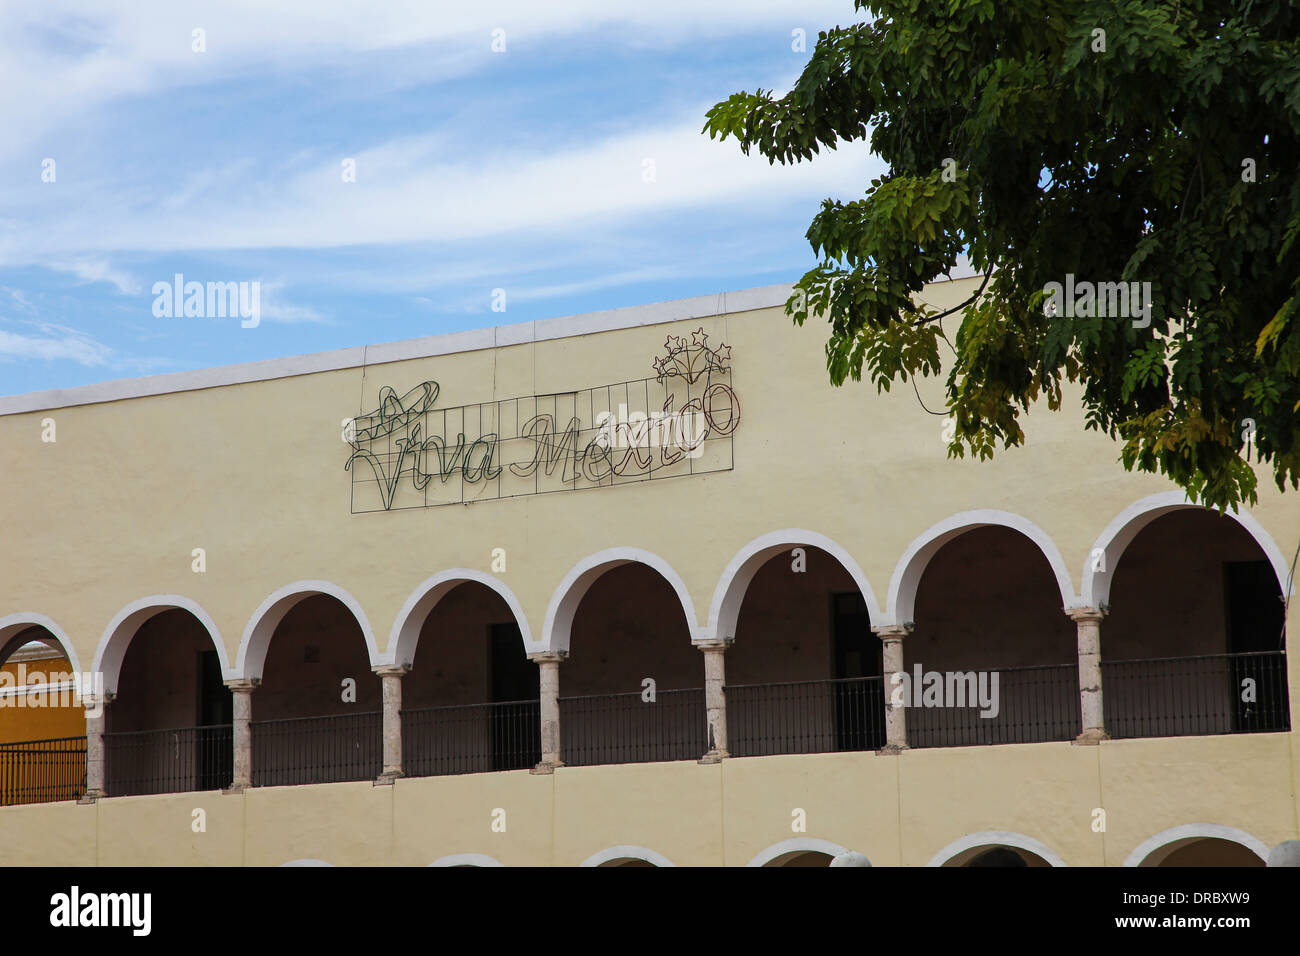 A neon sign (unlit) saying Viva Mexico on the side of a building Valladolid Mexico - Stock Image